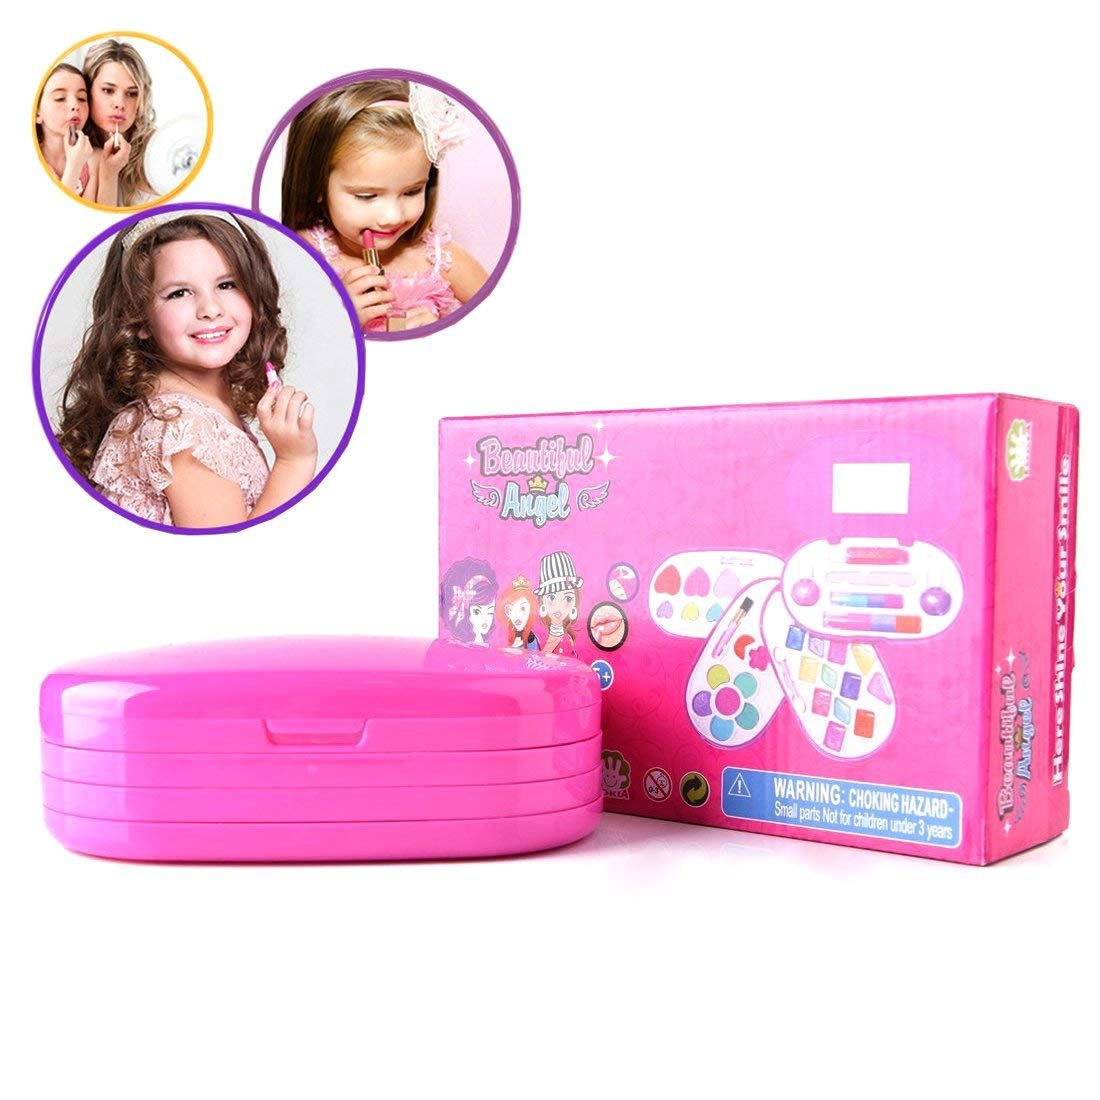 BonnieSun Kids Makeup Kits Girls Washable Cosmetics Dress-up Toys Safety Tested Vanity Deluxe Beauty Palette Set Mirror by BonnieSun (Image #6)